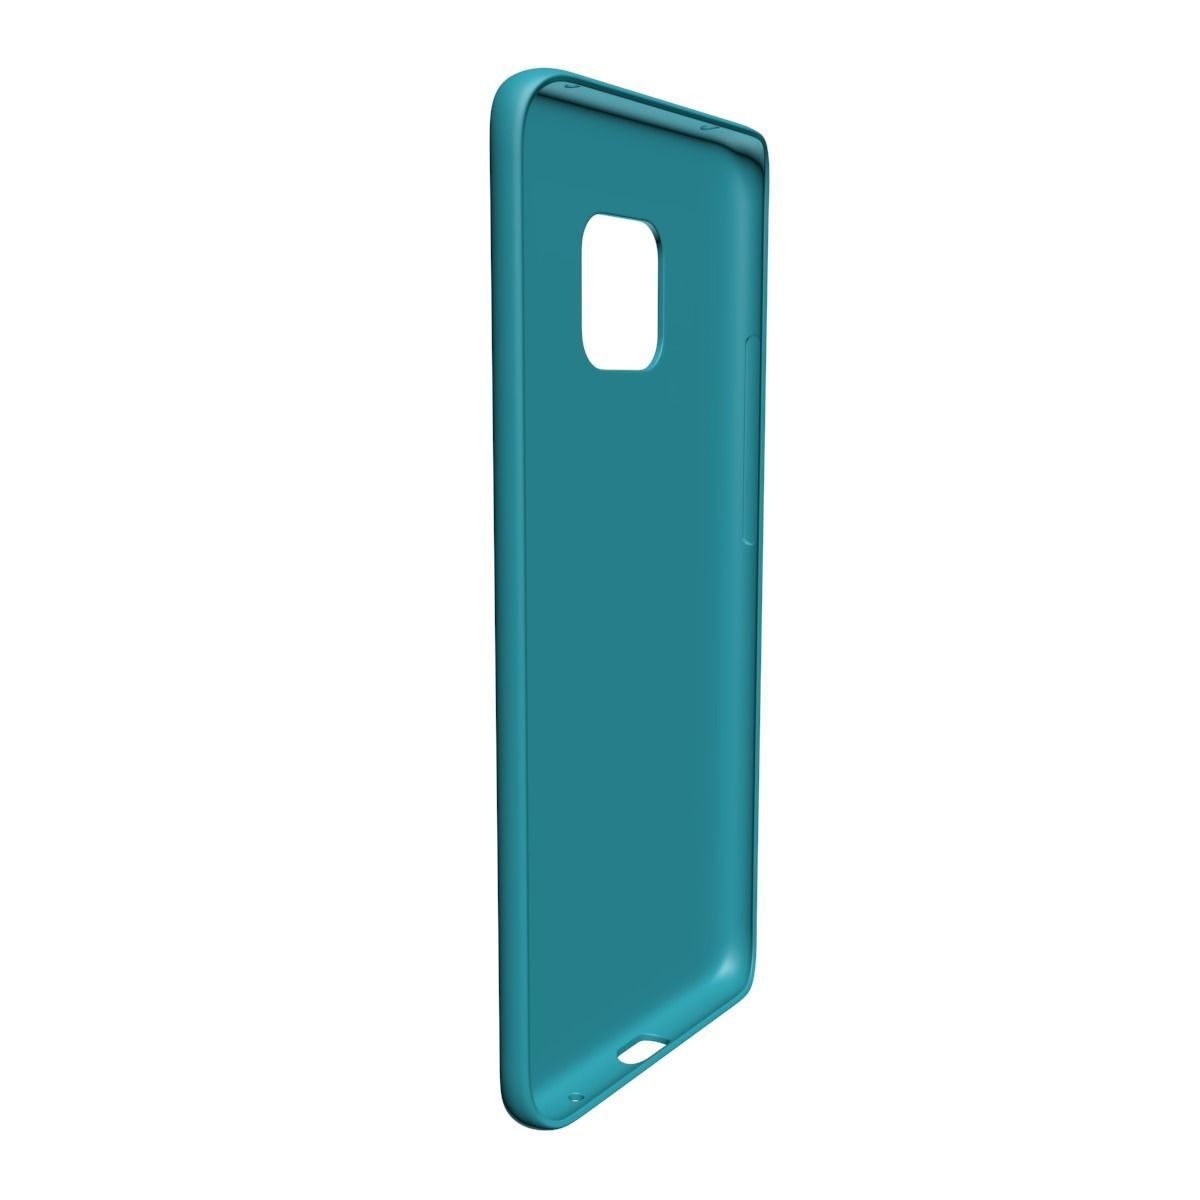 Case for Huawei Mate 20 pro